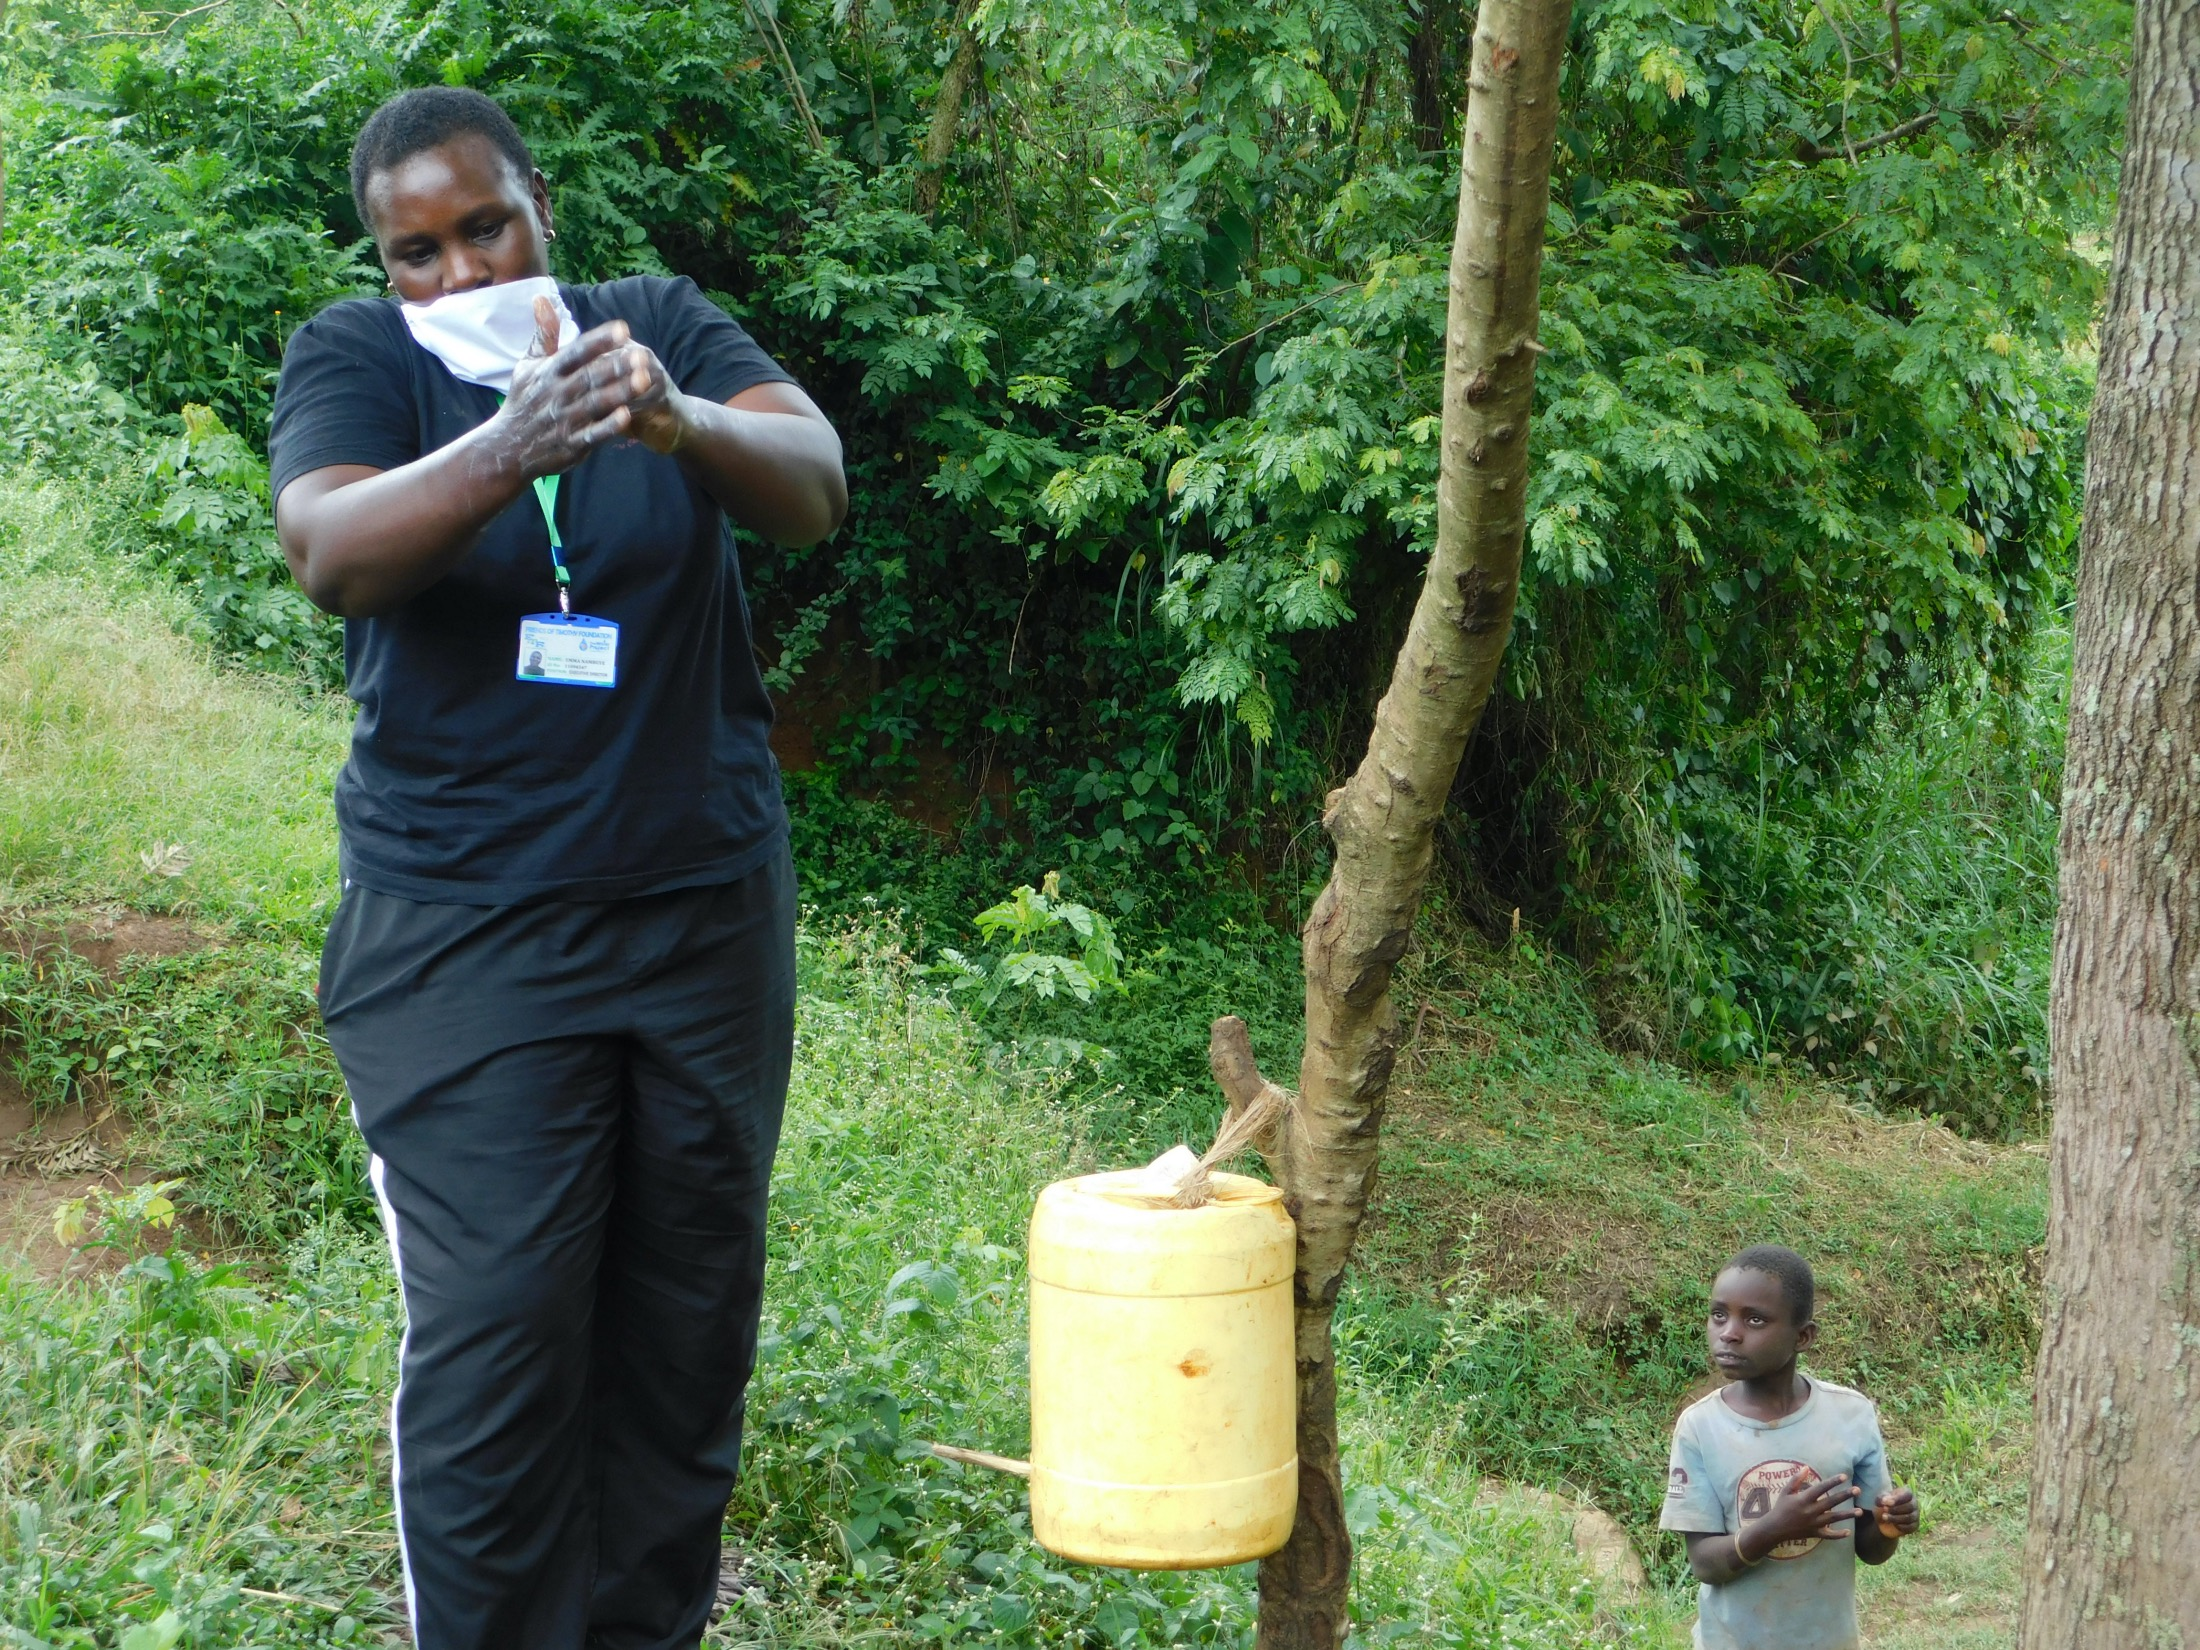 The Water Project : 5-covid19-kenya18313-emmah-leads-handwashing-session